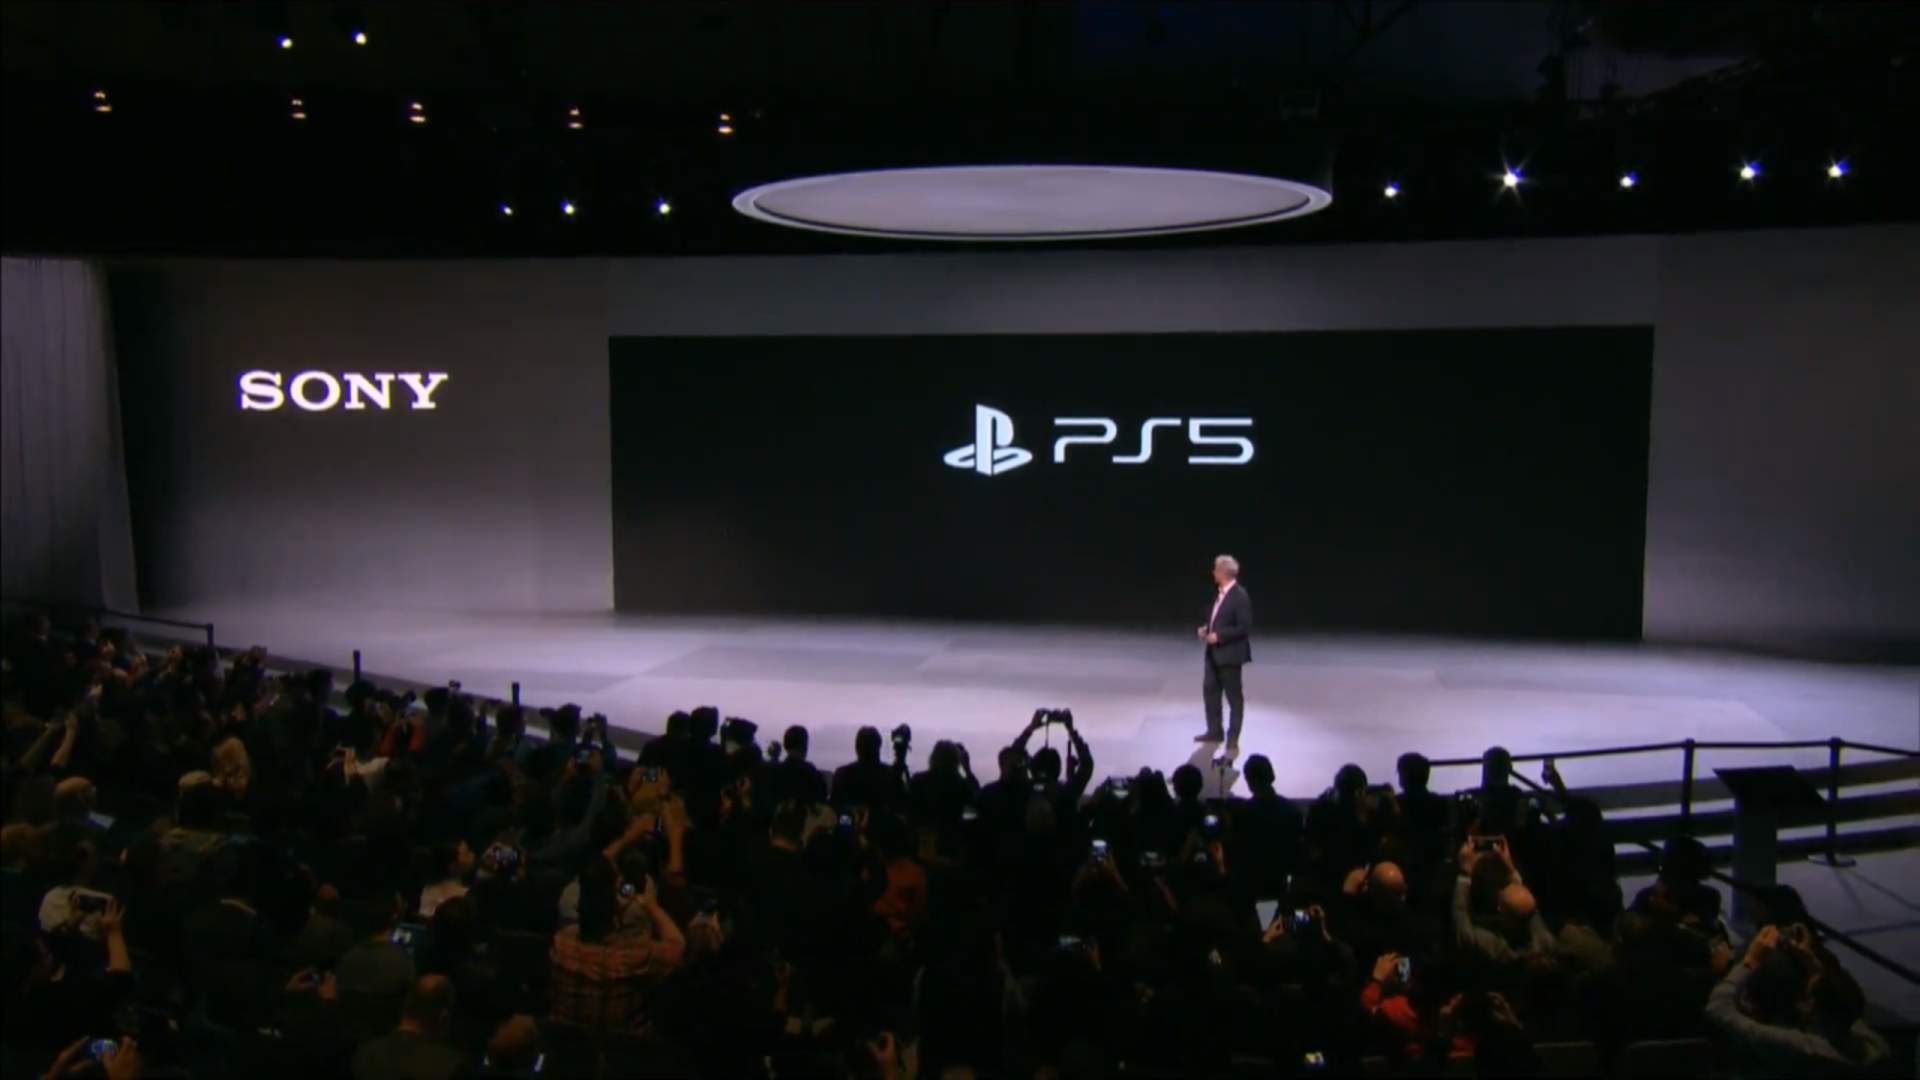 sony-delaying-ps5-reveal-event-protests-black-lives-matter